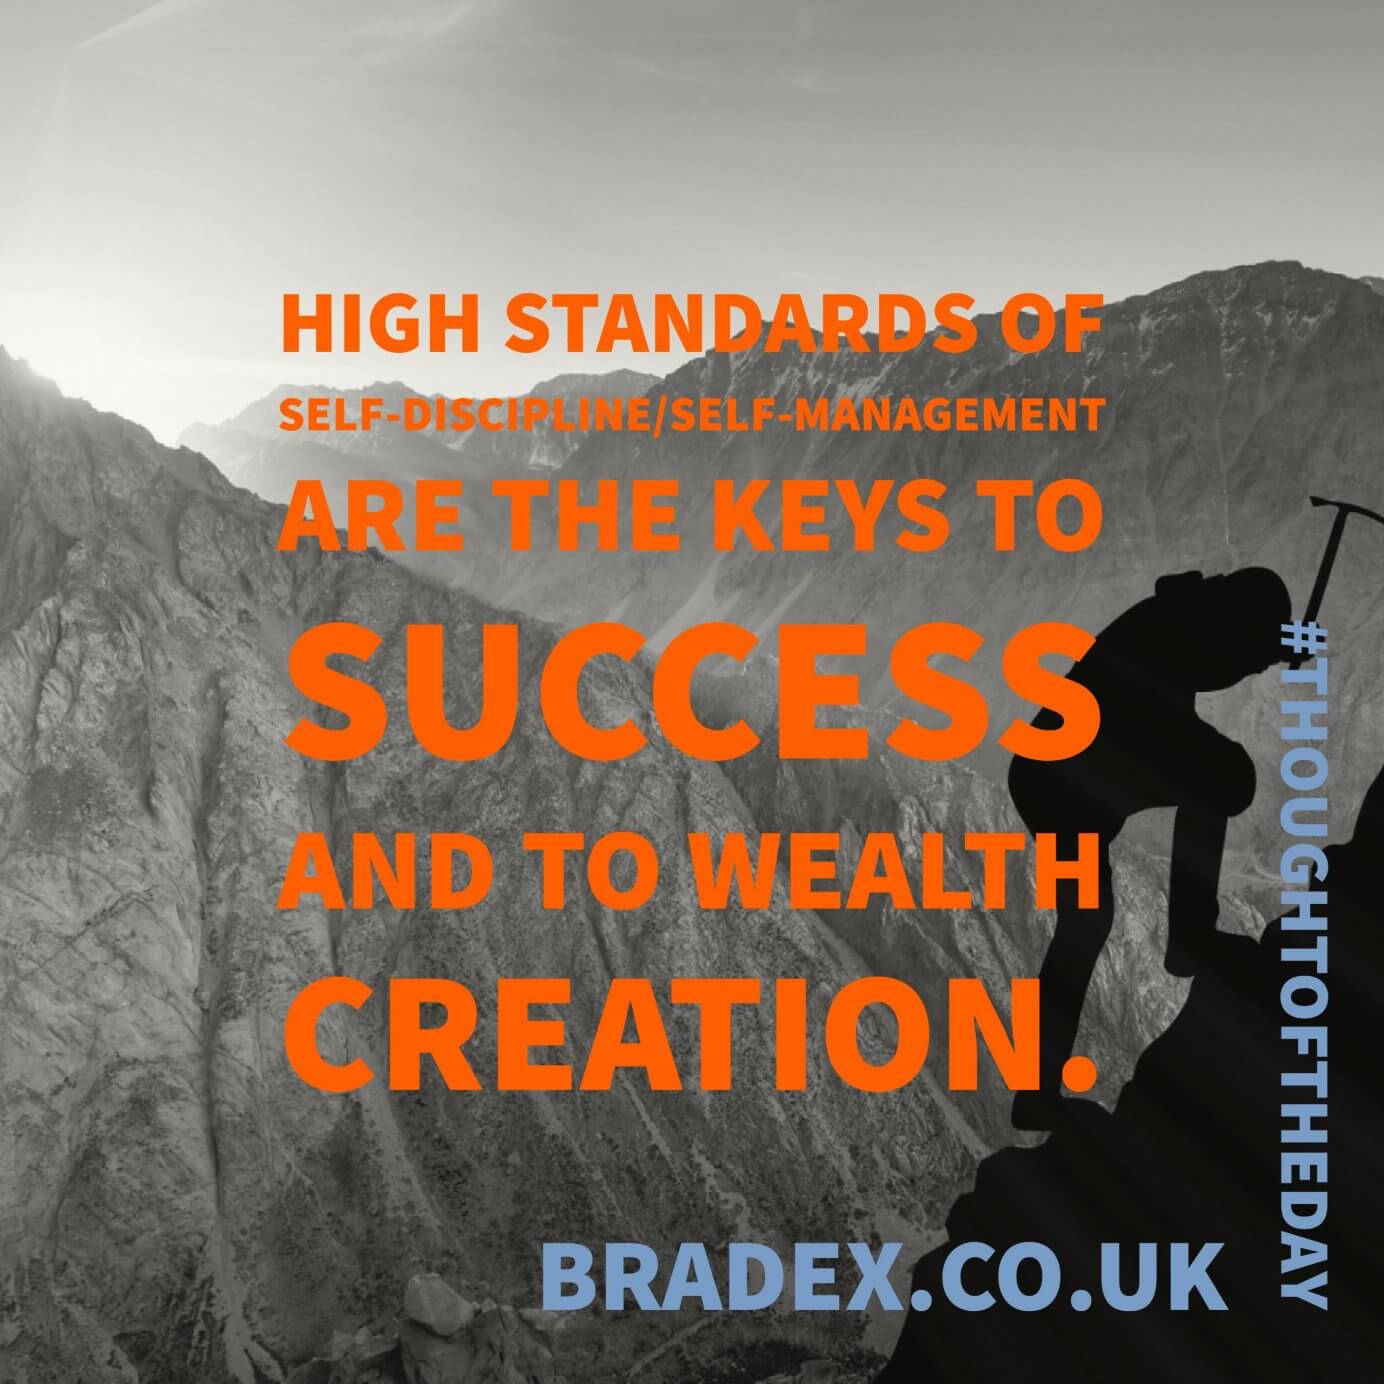 High Standards are the Key to Success